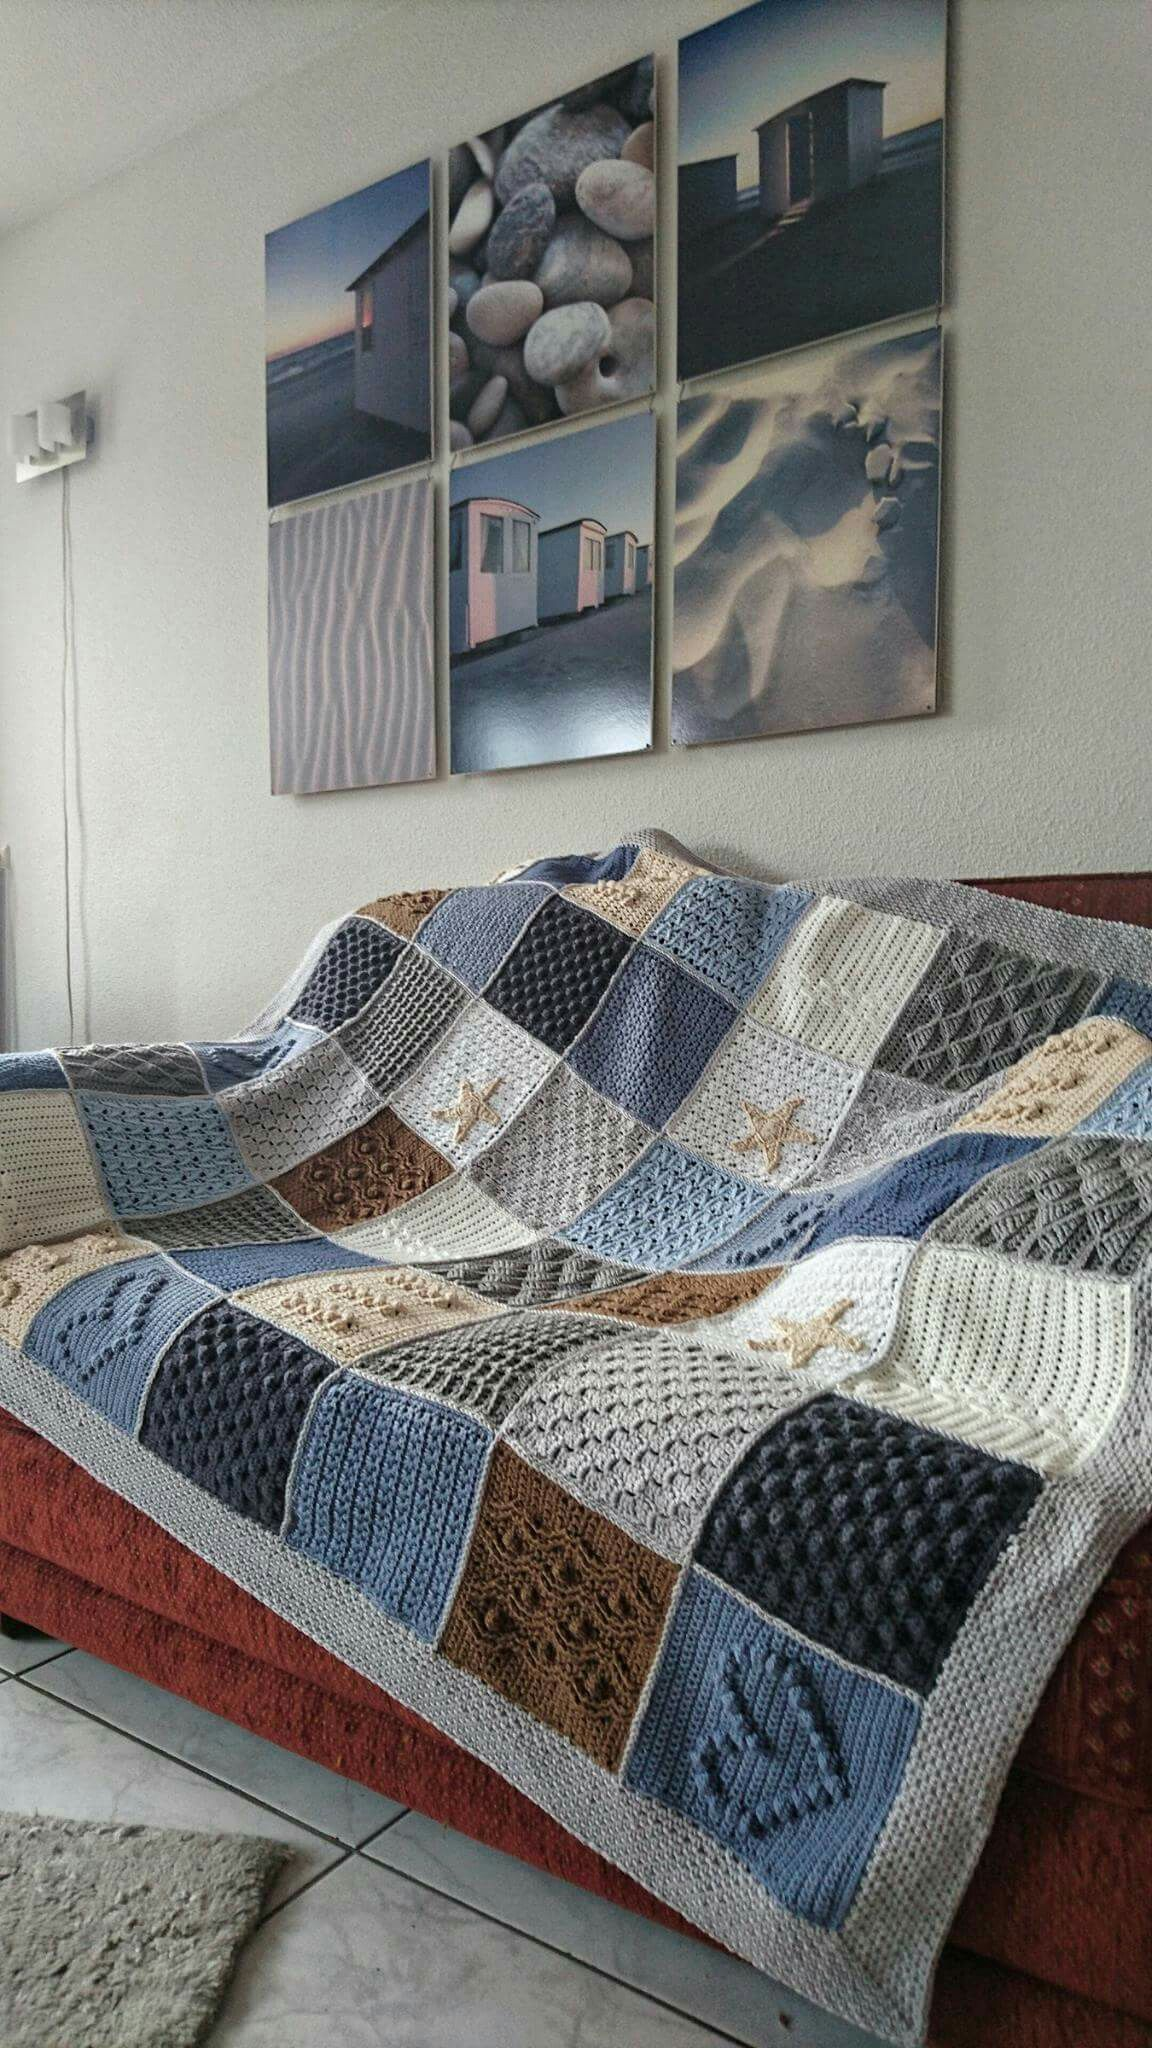 Scheepjes Blanket CAL 2016 (a variation) - In loving memory of the designer Marinke Slump (Wink)- Free Pattern available on Scheepjes Yarn Website #strandhuis